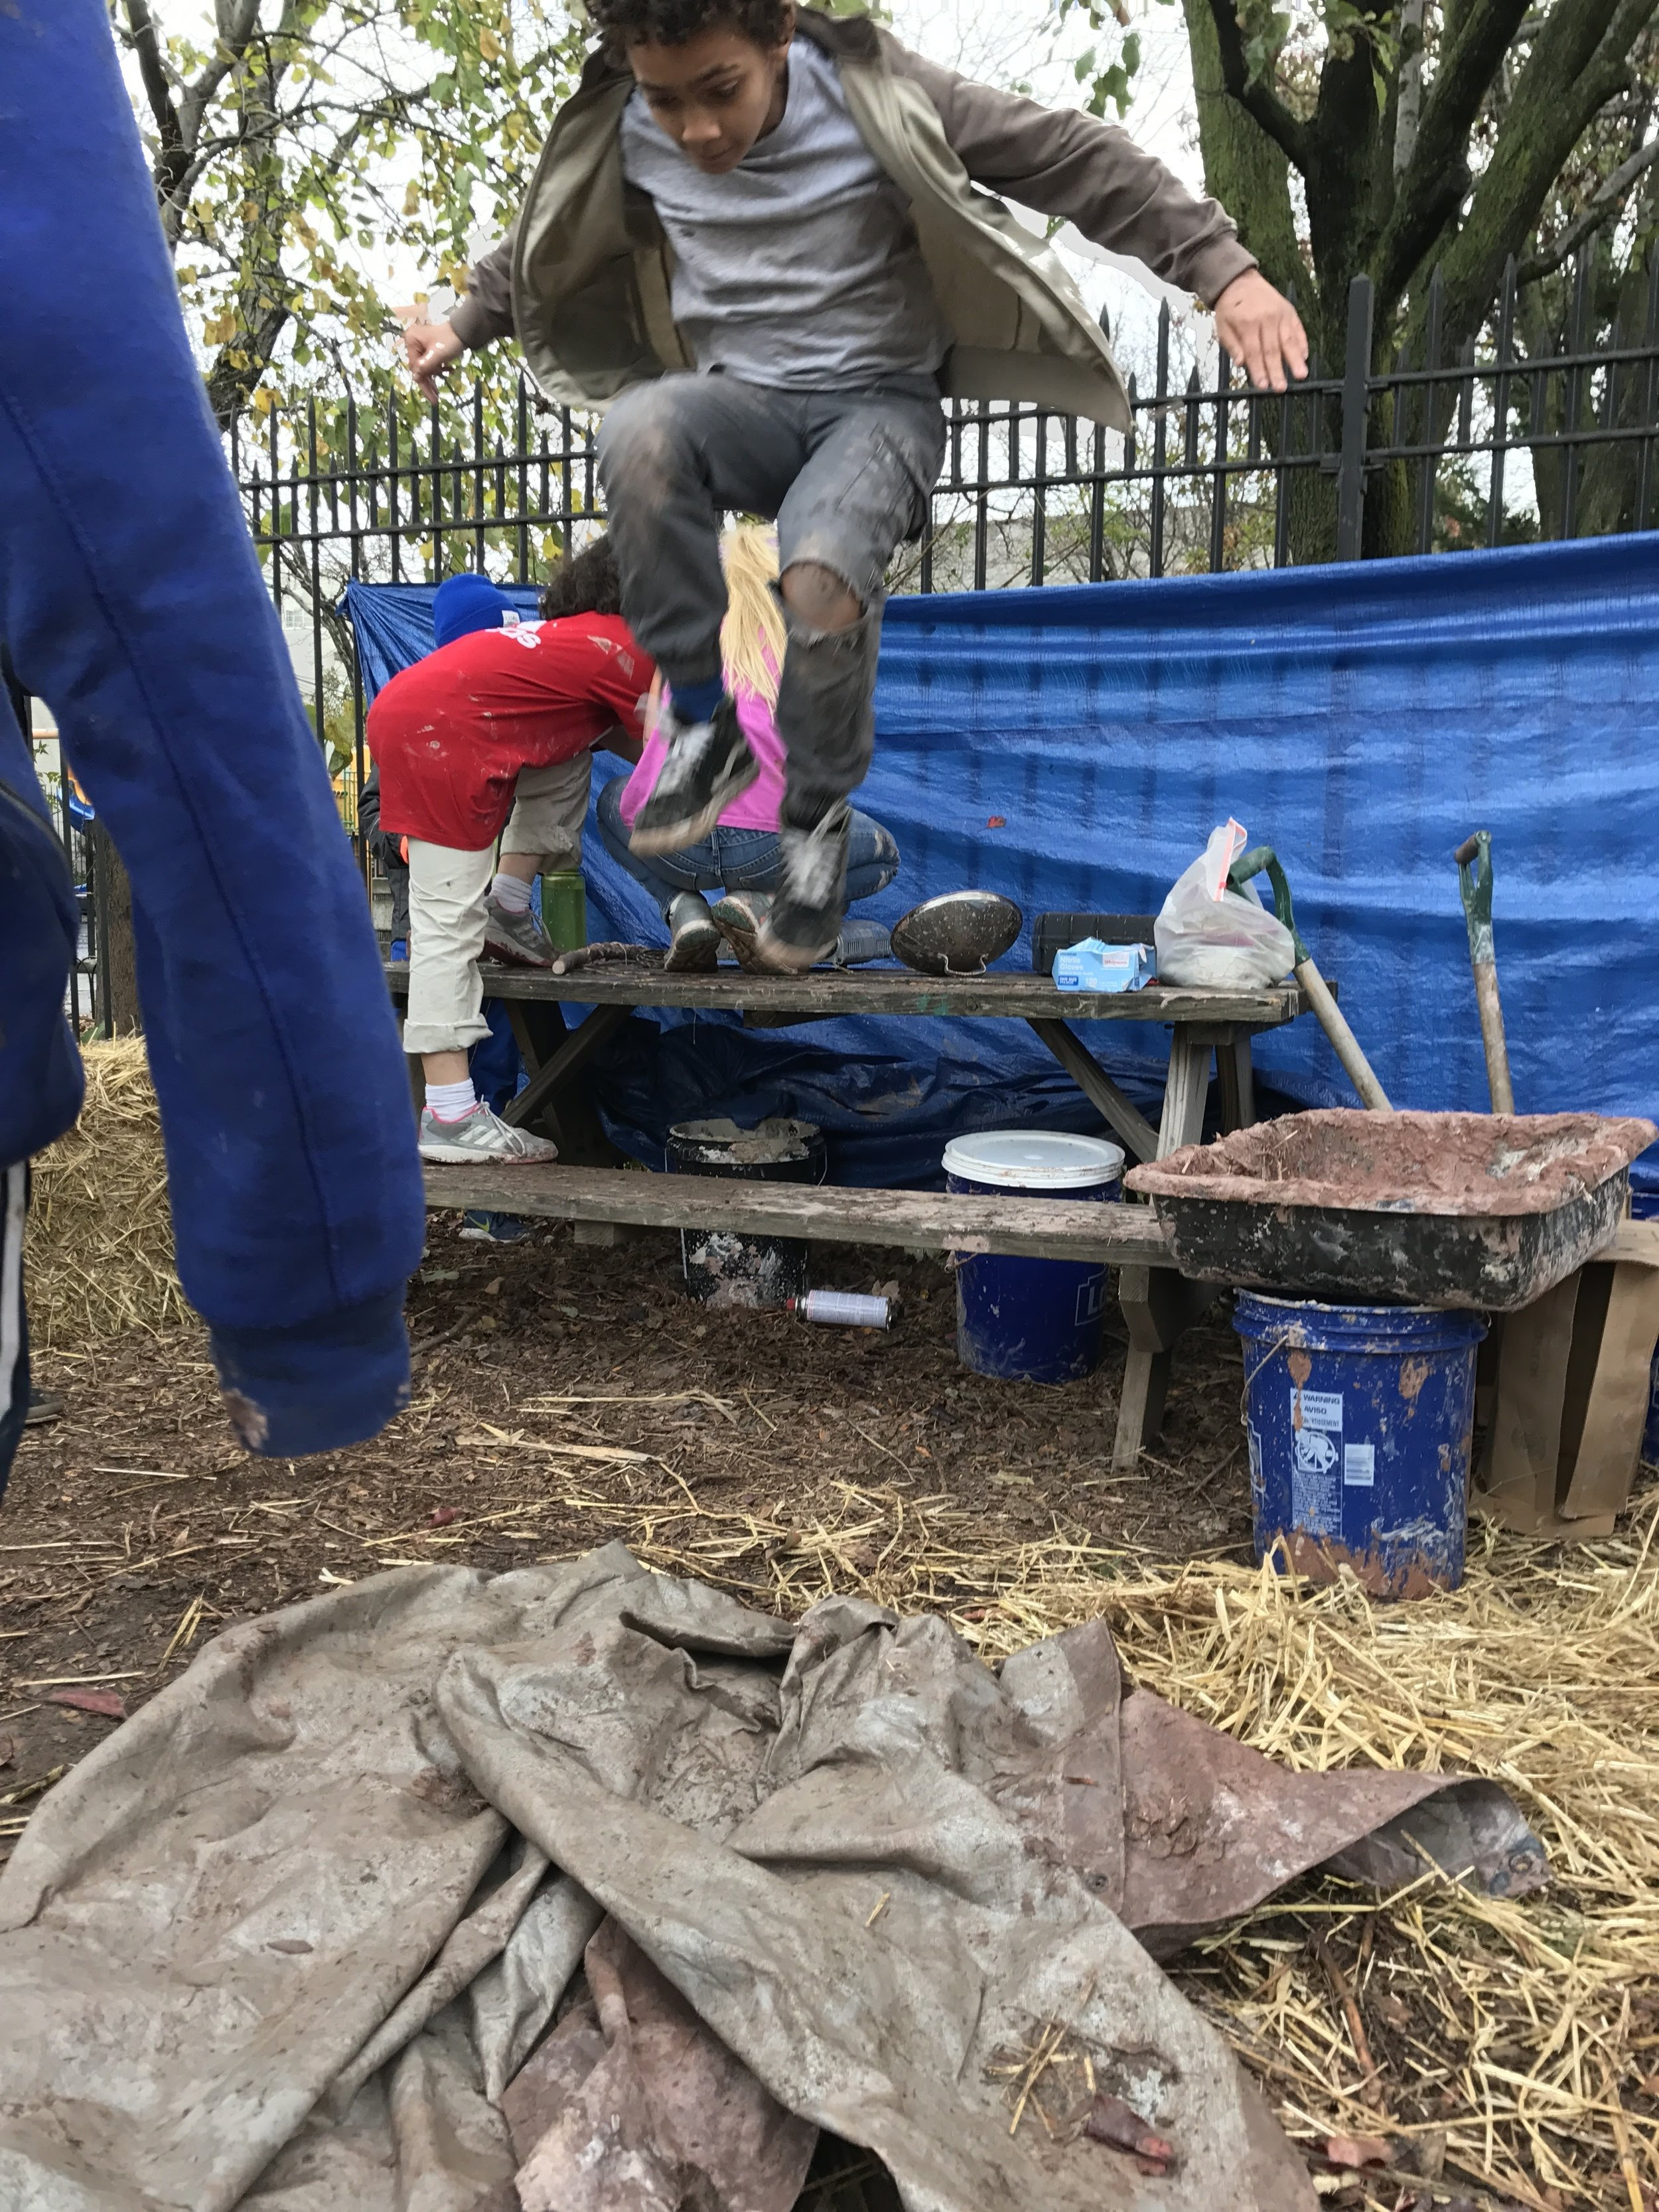 Processing the daub: mixing clay, sand and hay